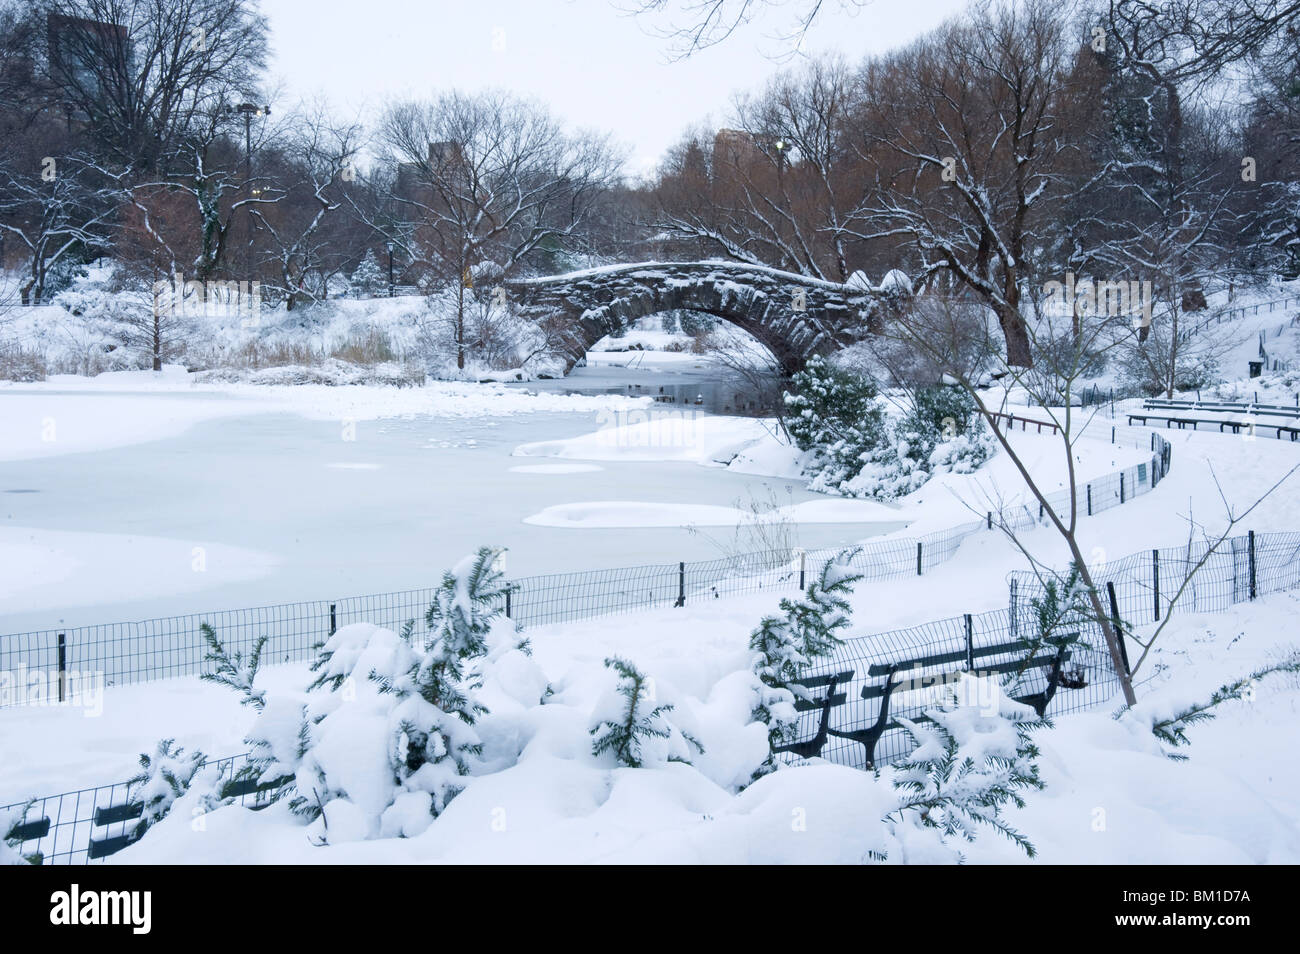 An early morning view of the Gapstow Bridge after a snowfall in Central Park, Manhattan, New York City, New York - Stock Image